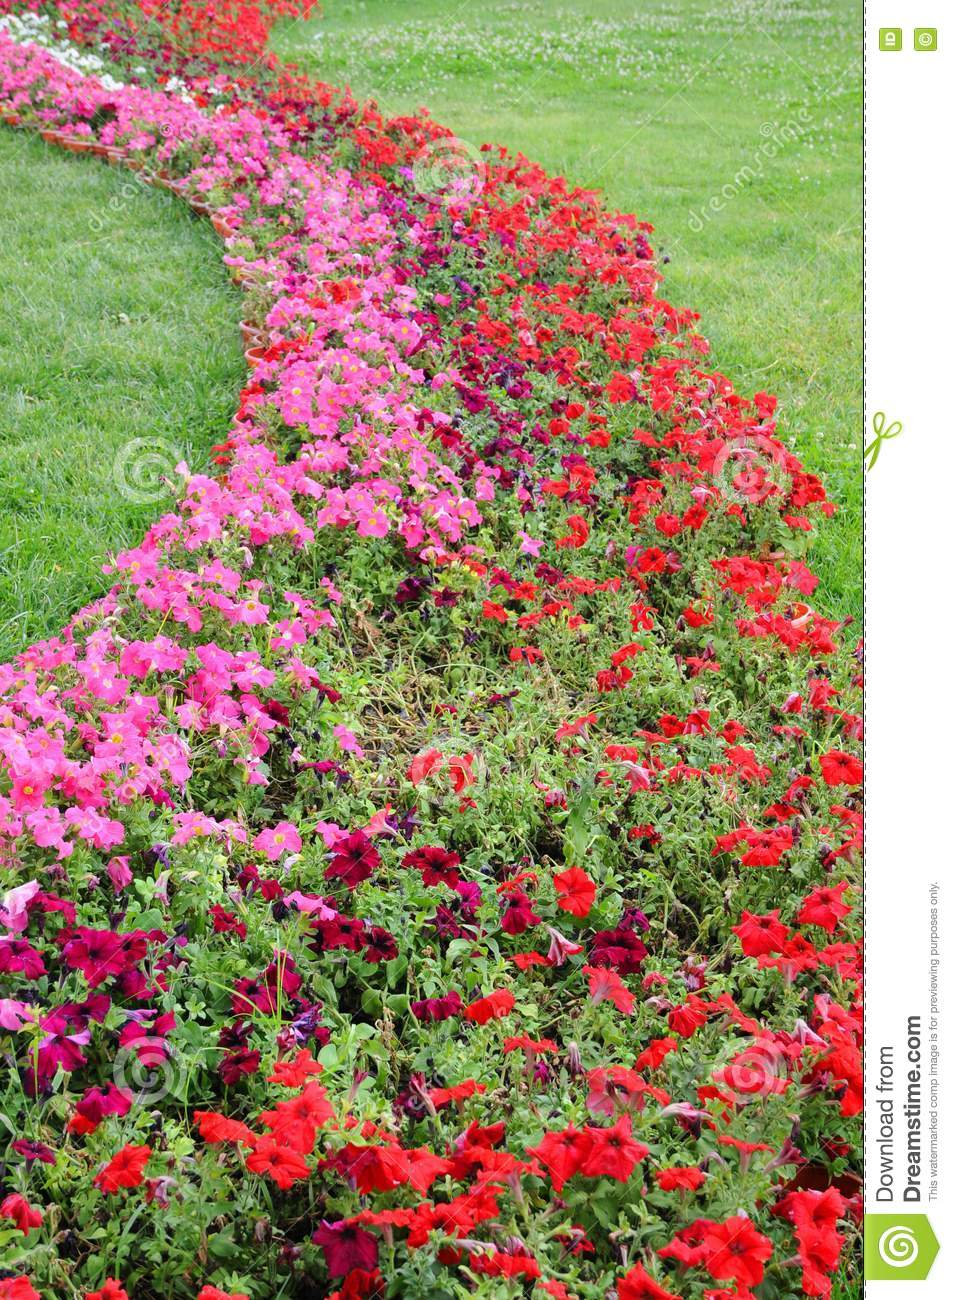 S shaped flower bed in meadow stock photo image 15090810 for Flower bed shapes designs